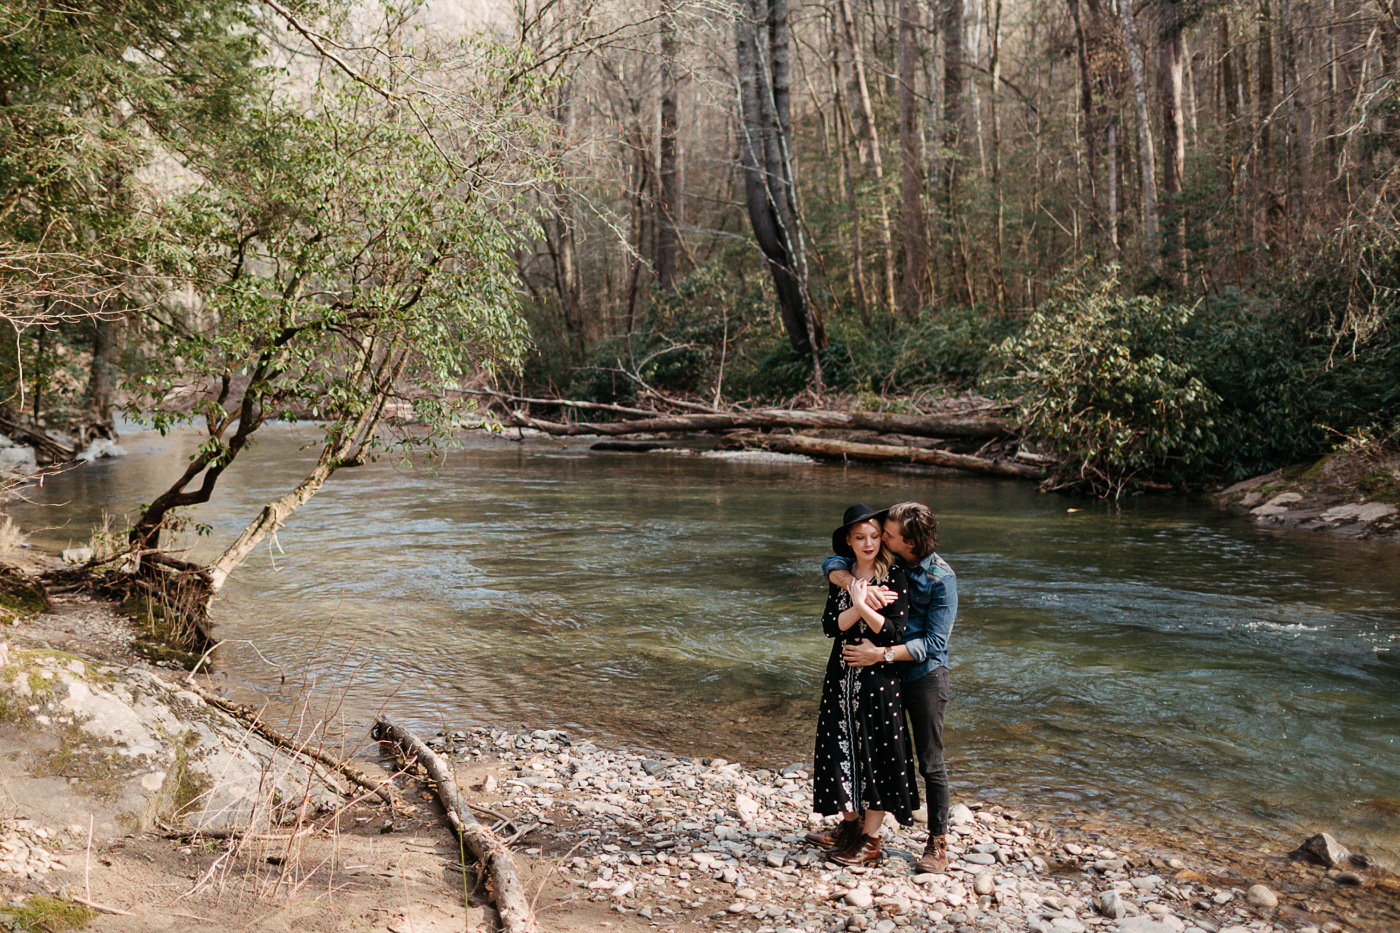 117-tallulah-gorge-engagement-session.jpg